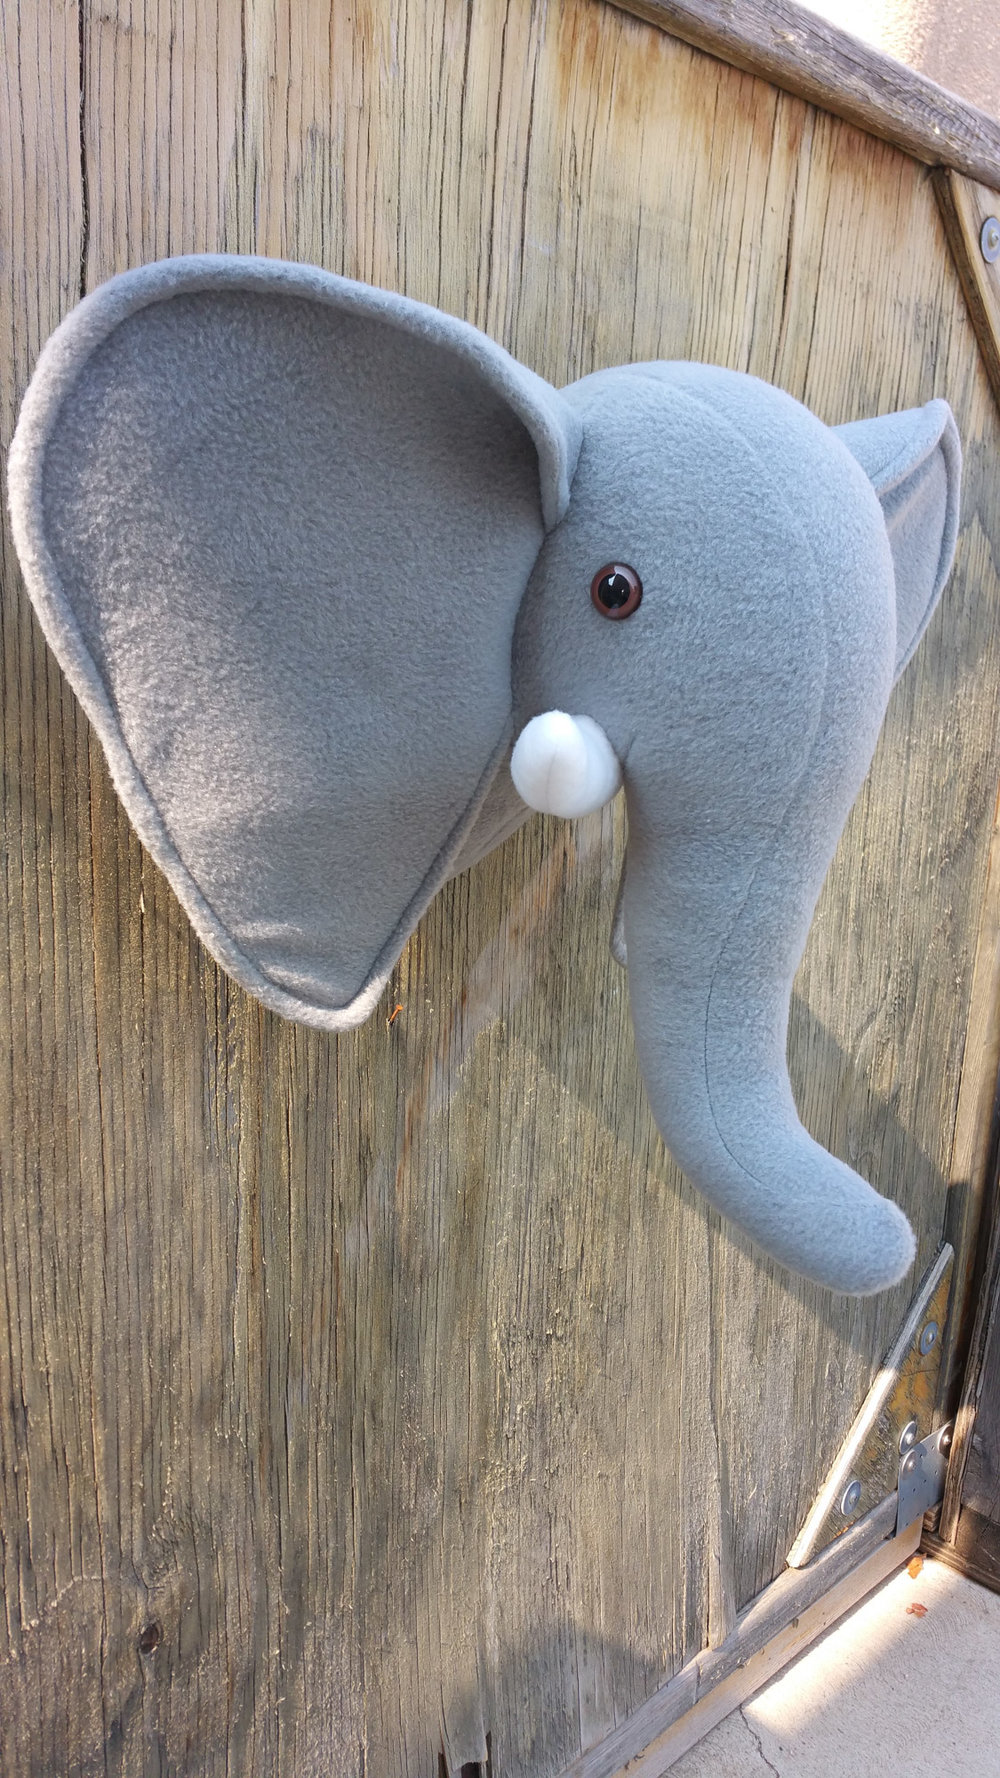 HUGHES cathie - elephant head.jpg